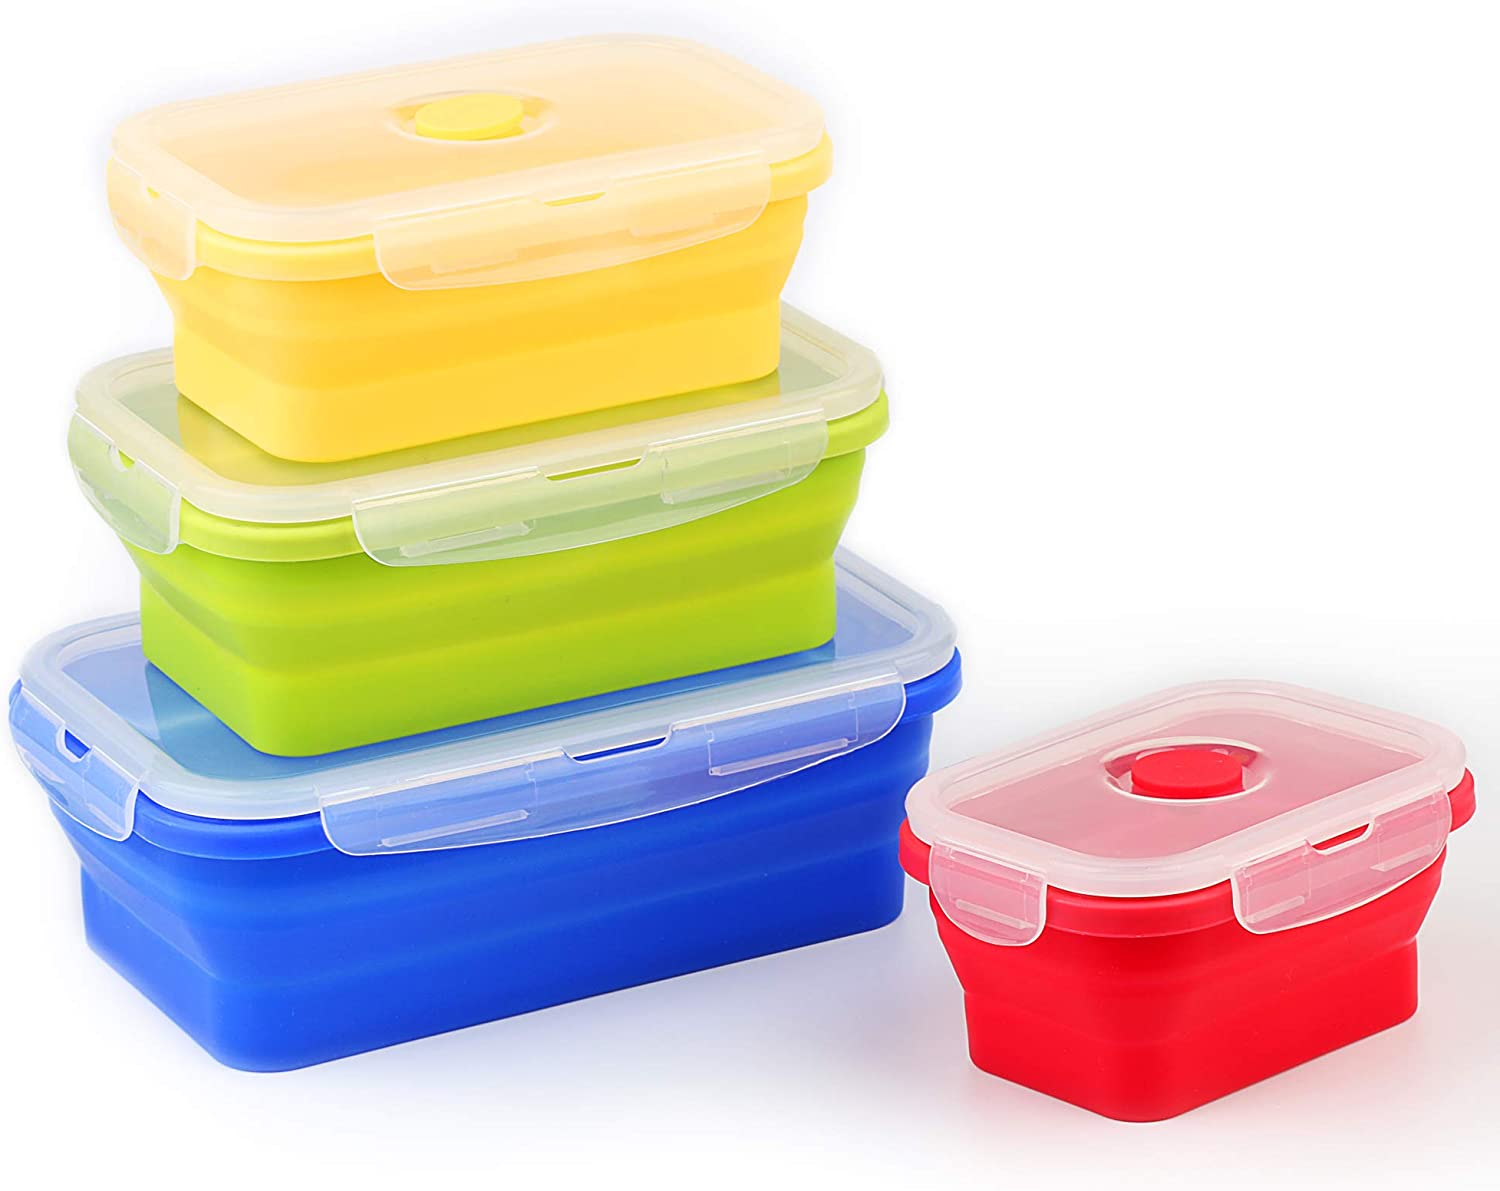 AILEHOPY Silicone Food Storage Containers with Airtight Plastic Lids - Set of 4 Small and Large Collapsible Meal Prep Container for Kitchen Lunch Boxes Microwave and Freezer